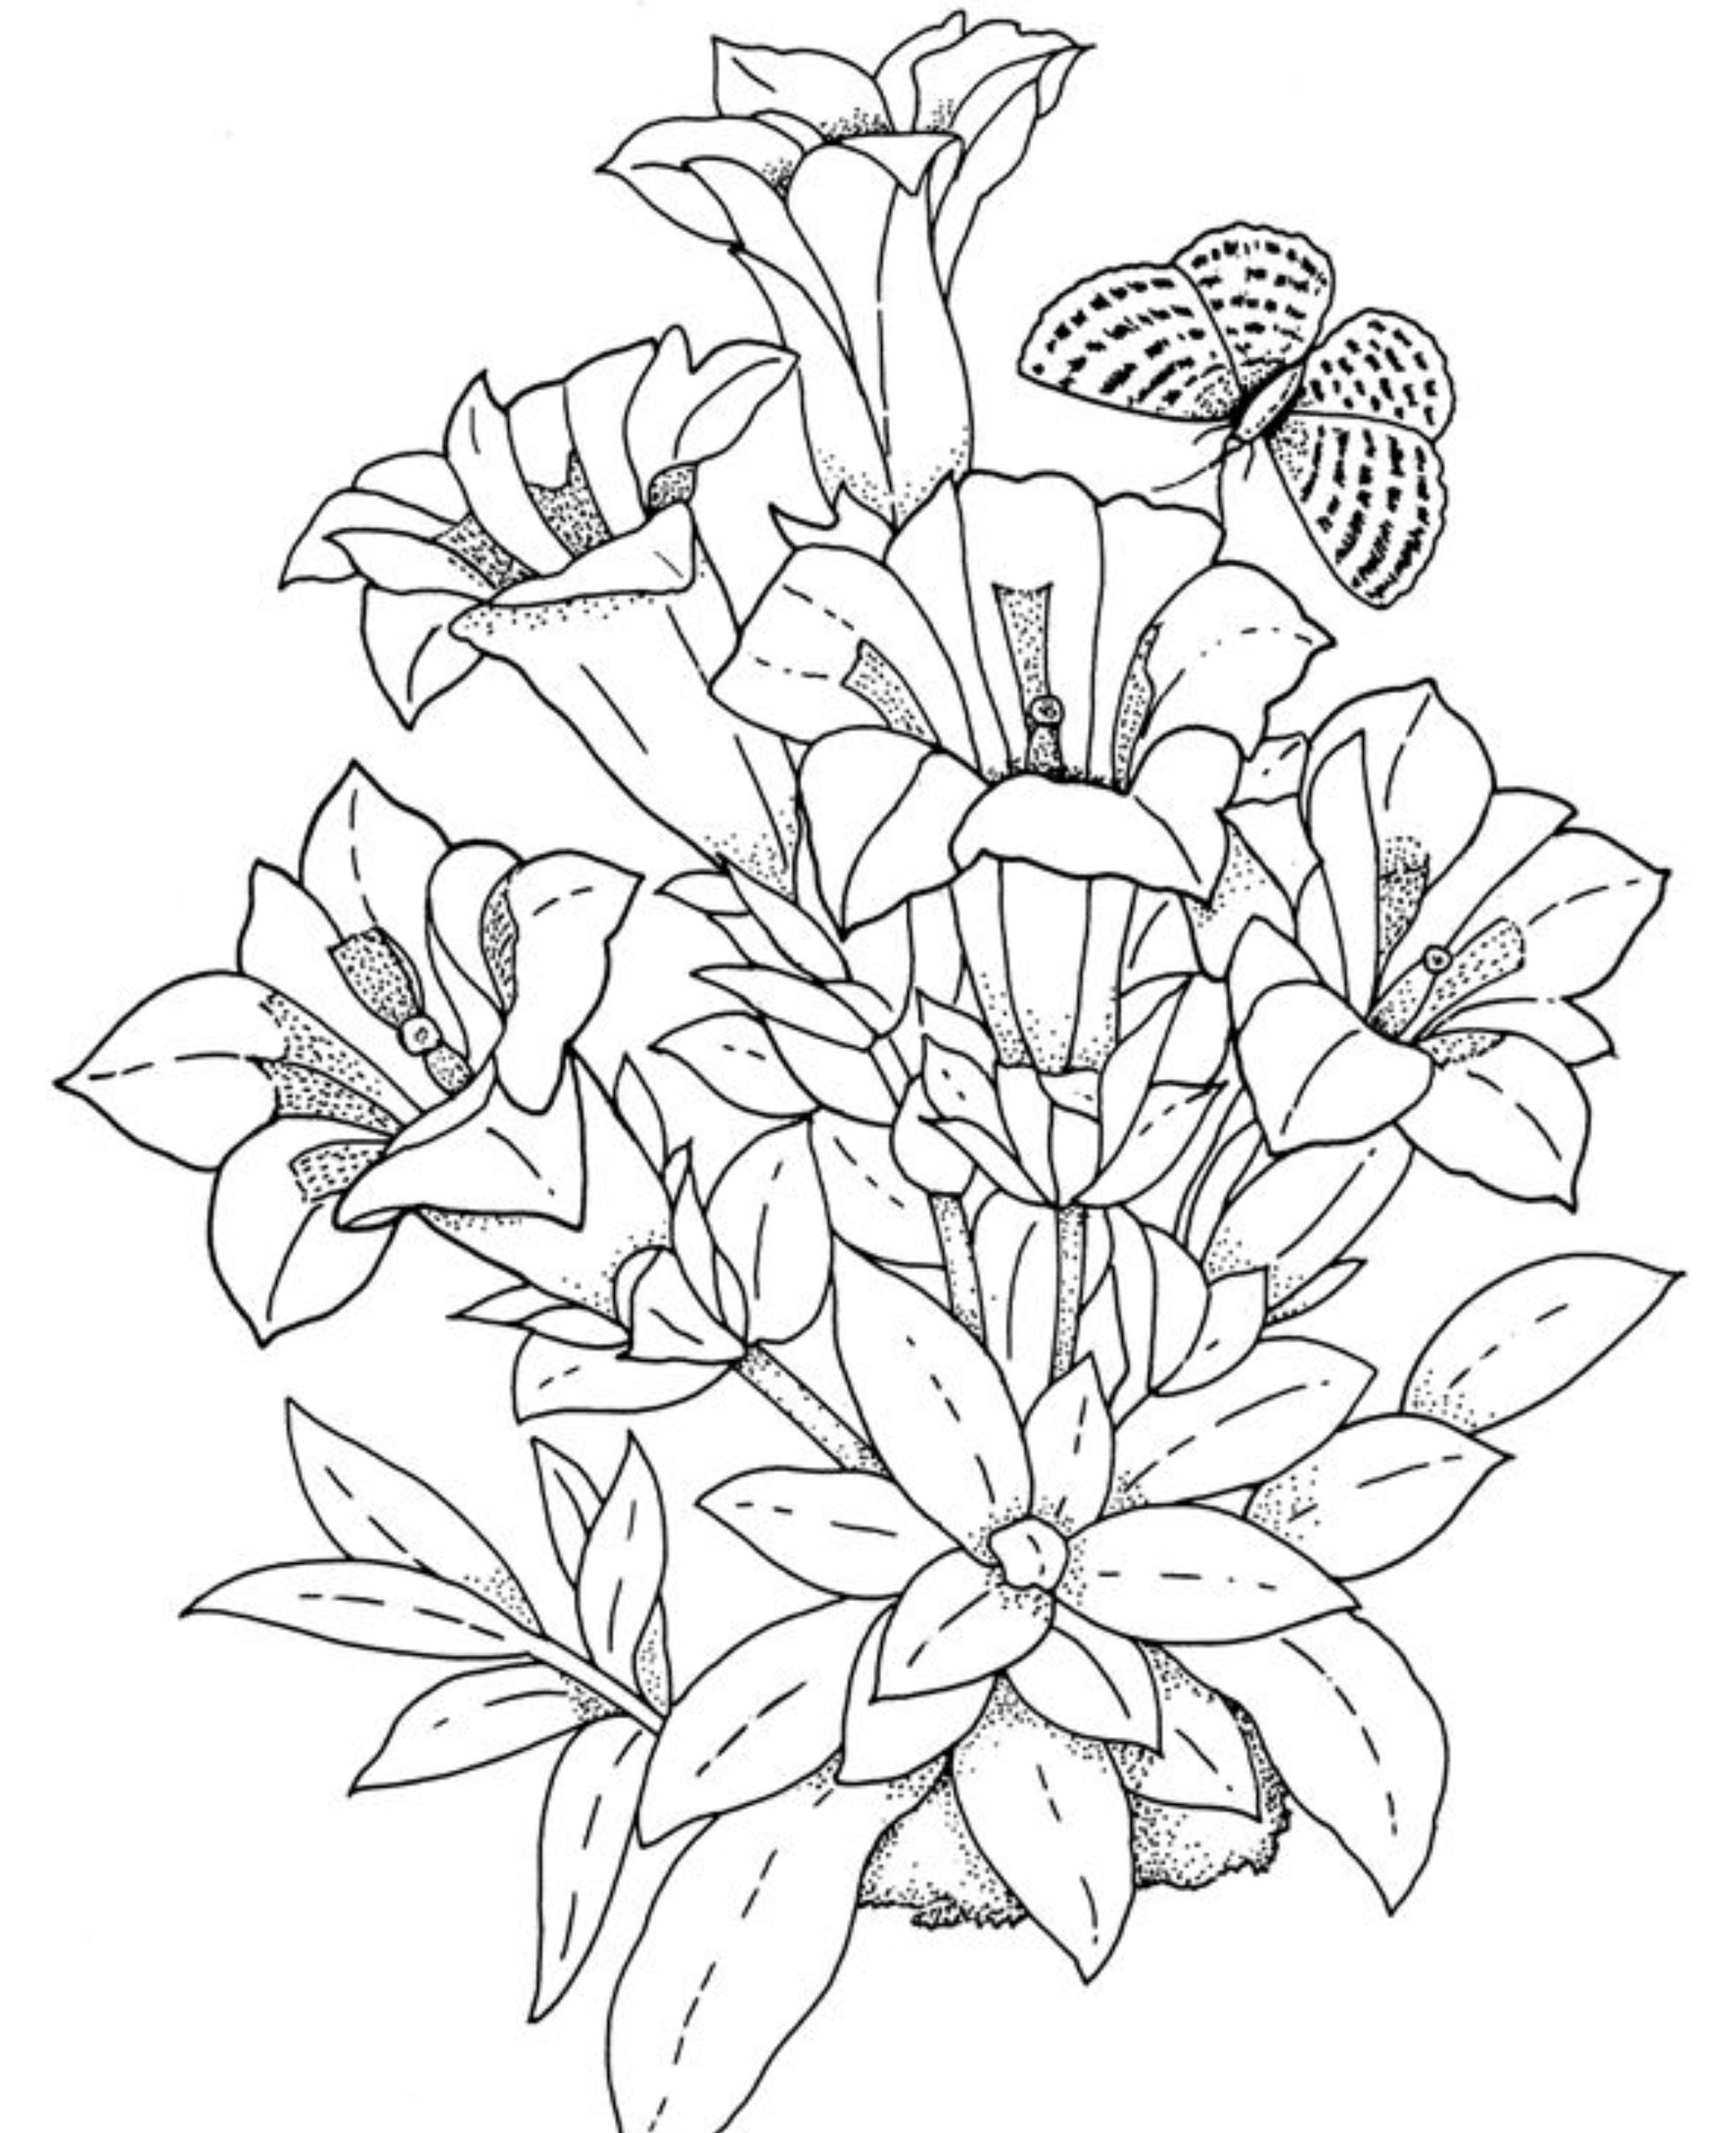 coloring flowers for adults drawing flower flowers adult coloring pages page 4 coloring flowers for adults